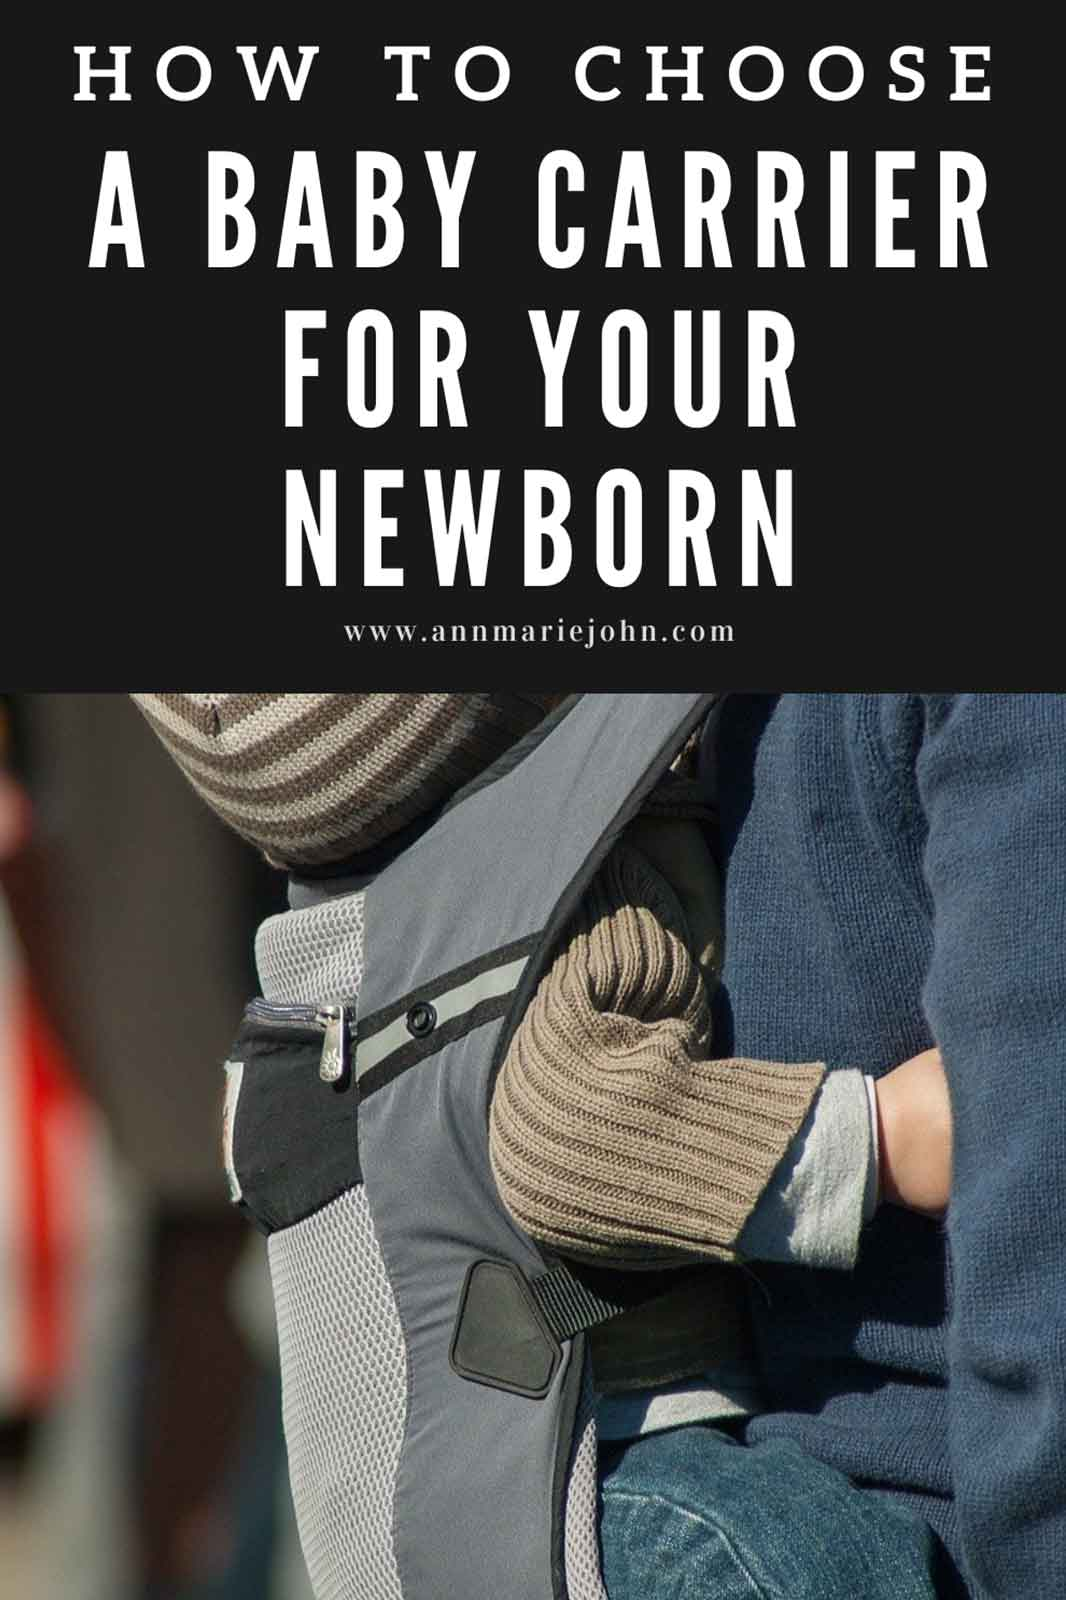 How to Choose a Baby Carrier for a Newborn